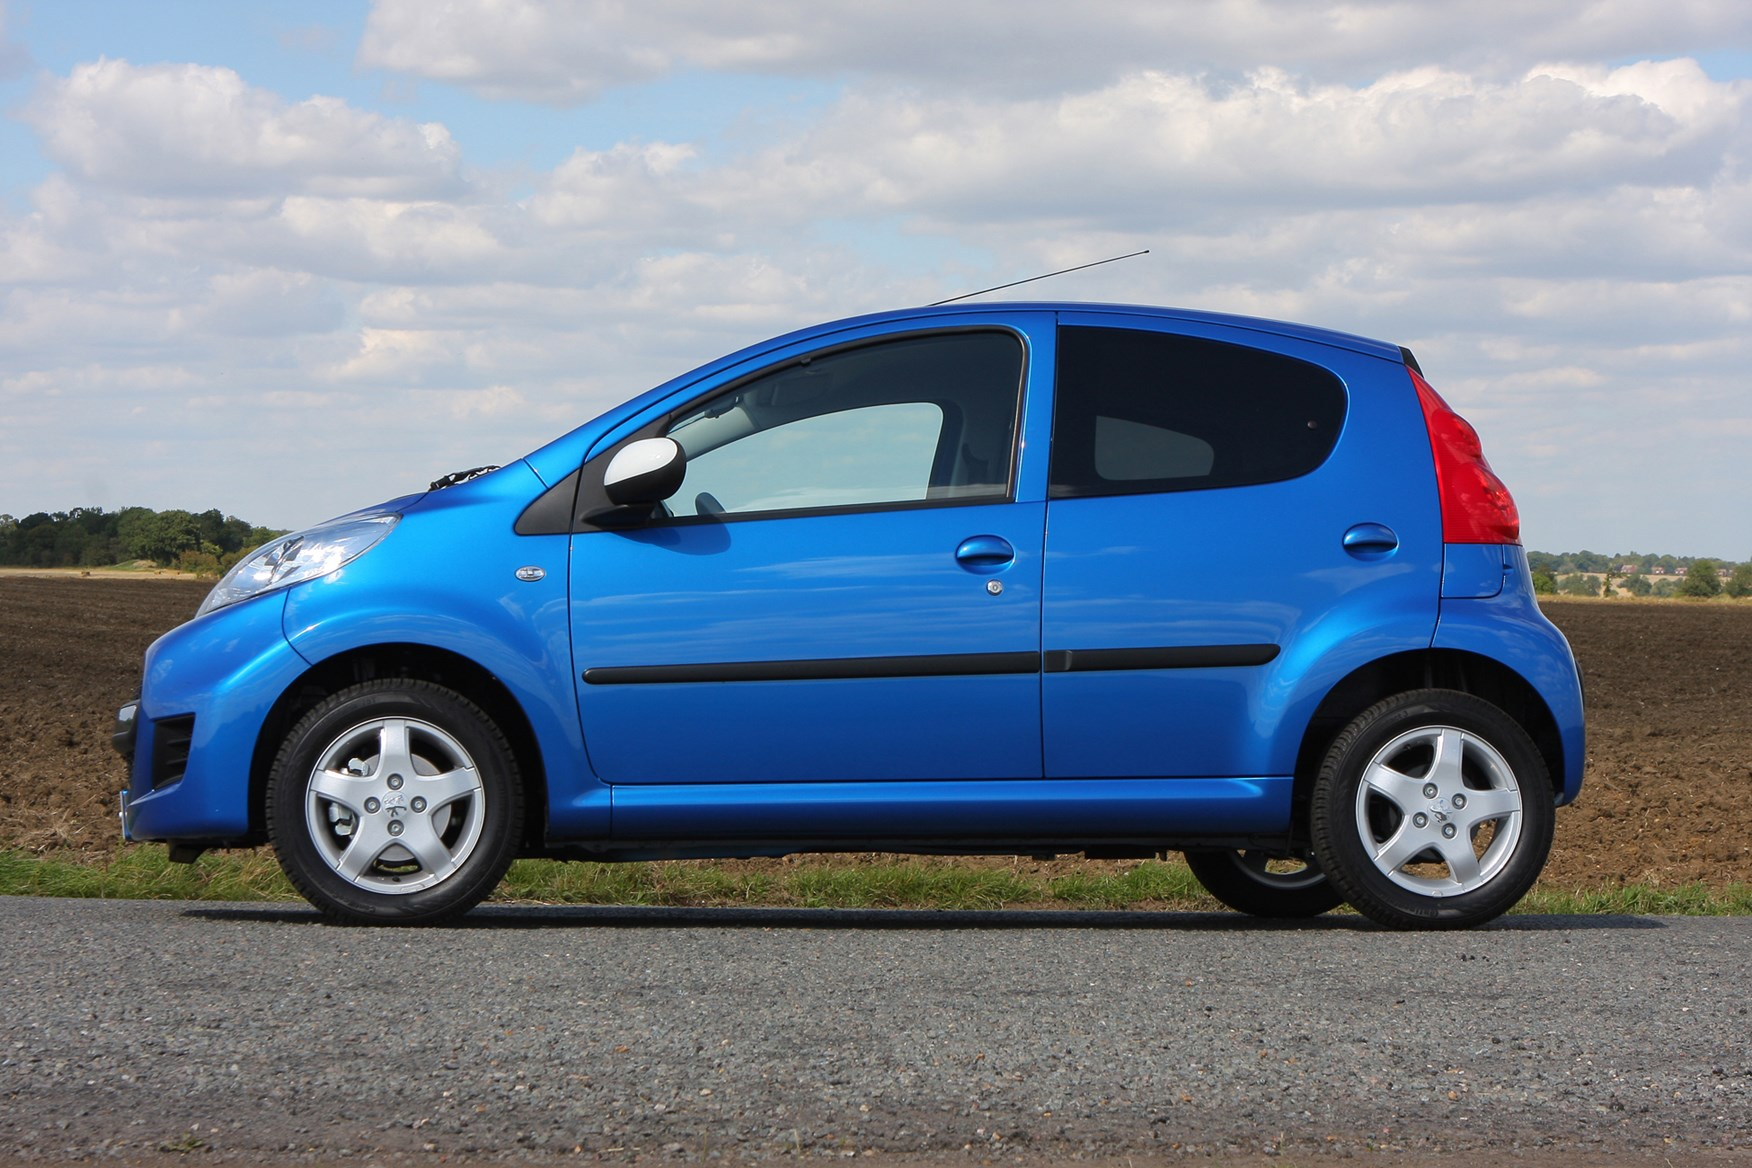 peugeot 107 hatchback review 2005 2014 parkers. Black Bedroom Furniture Sets. Home Design Ideas